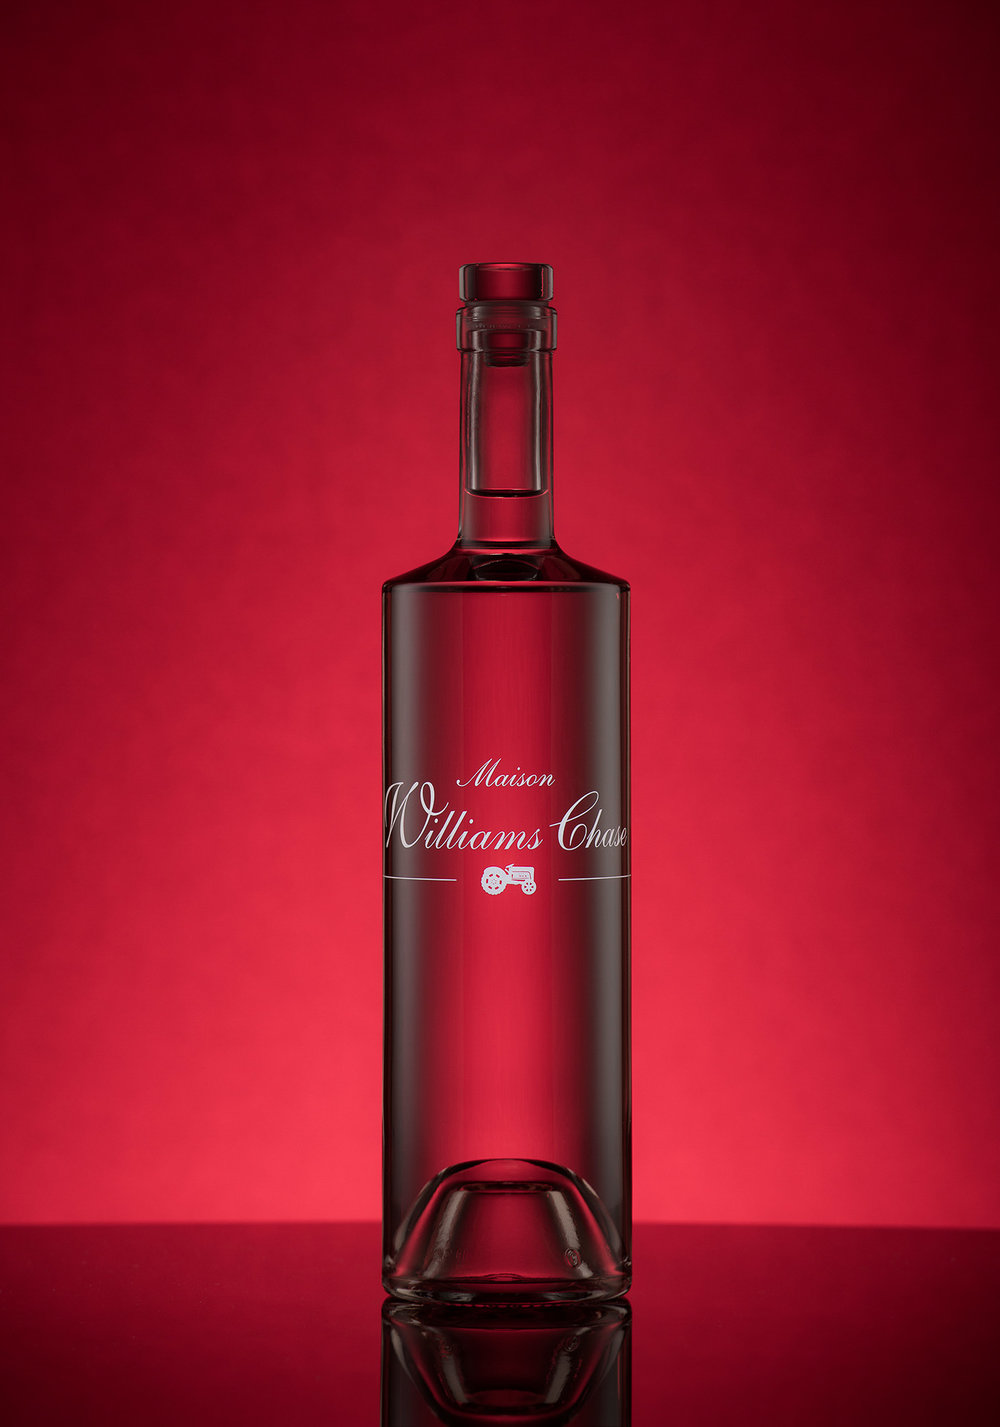 Williams Chase bottle product photograph with reflections